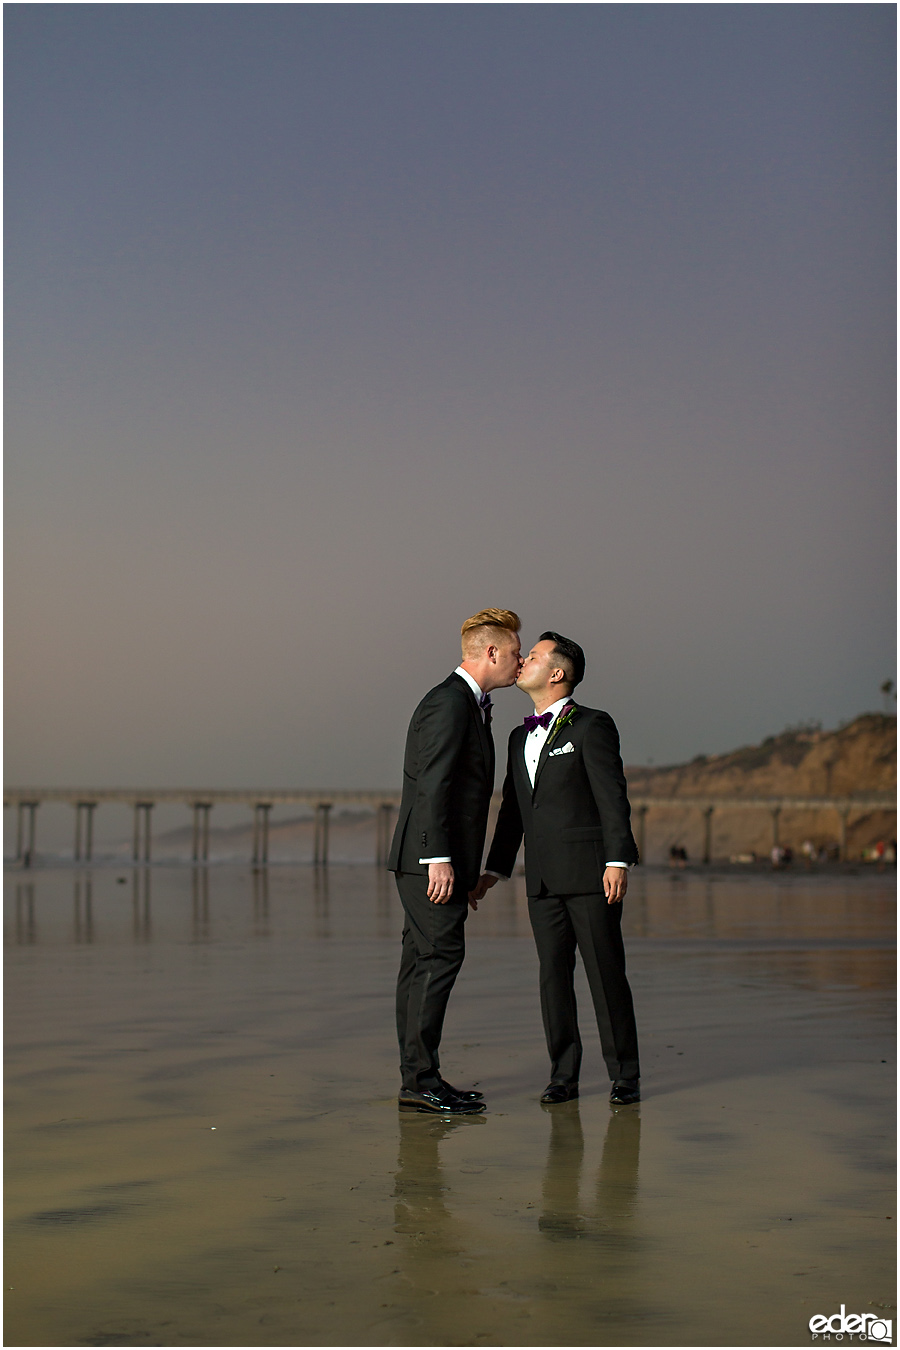 Scripps Seaside Forum sunset wedding photos.